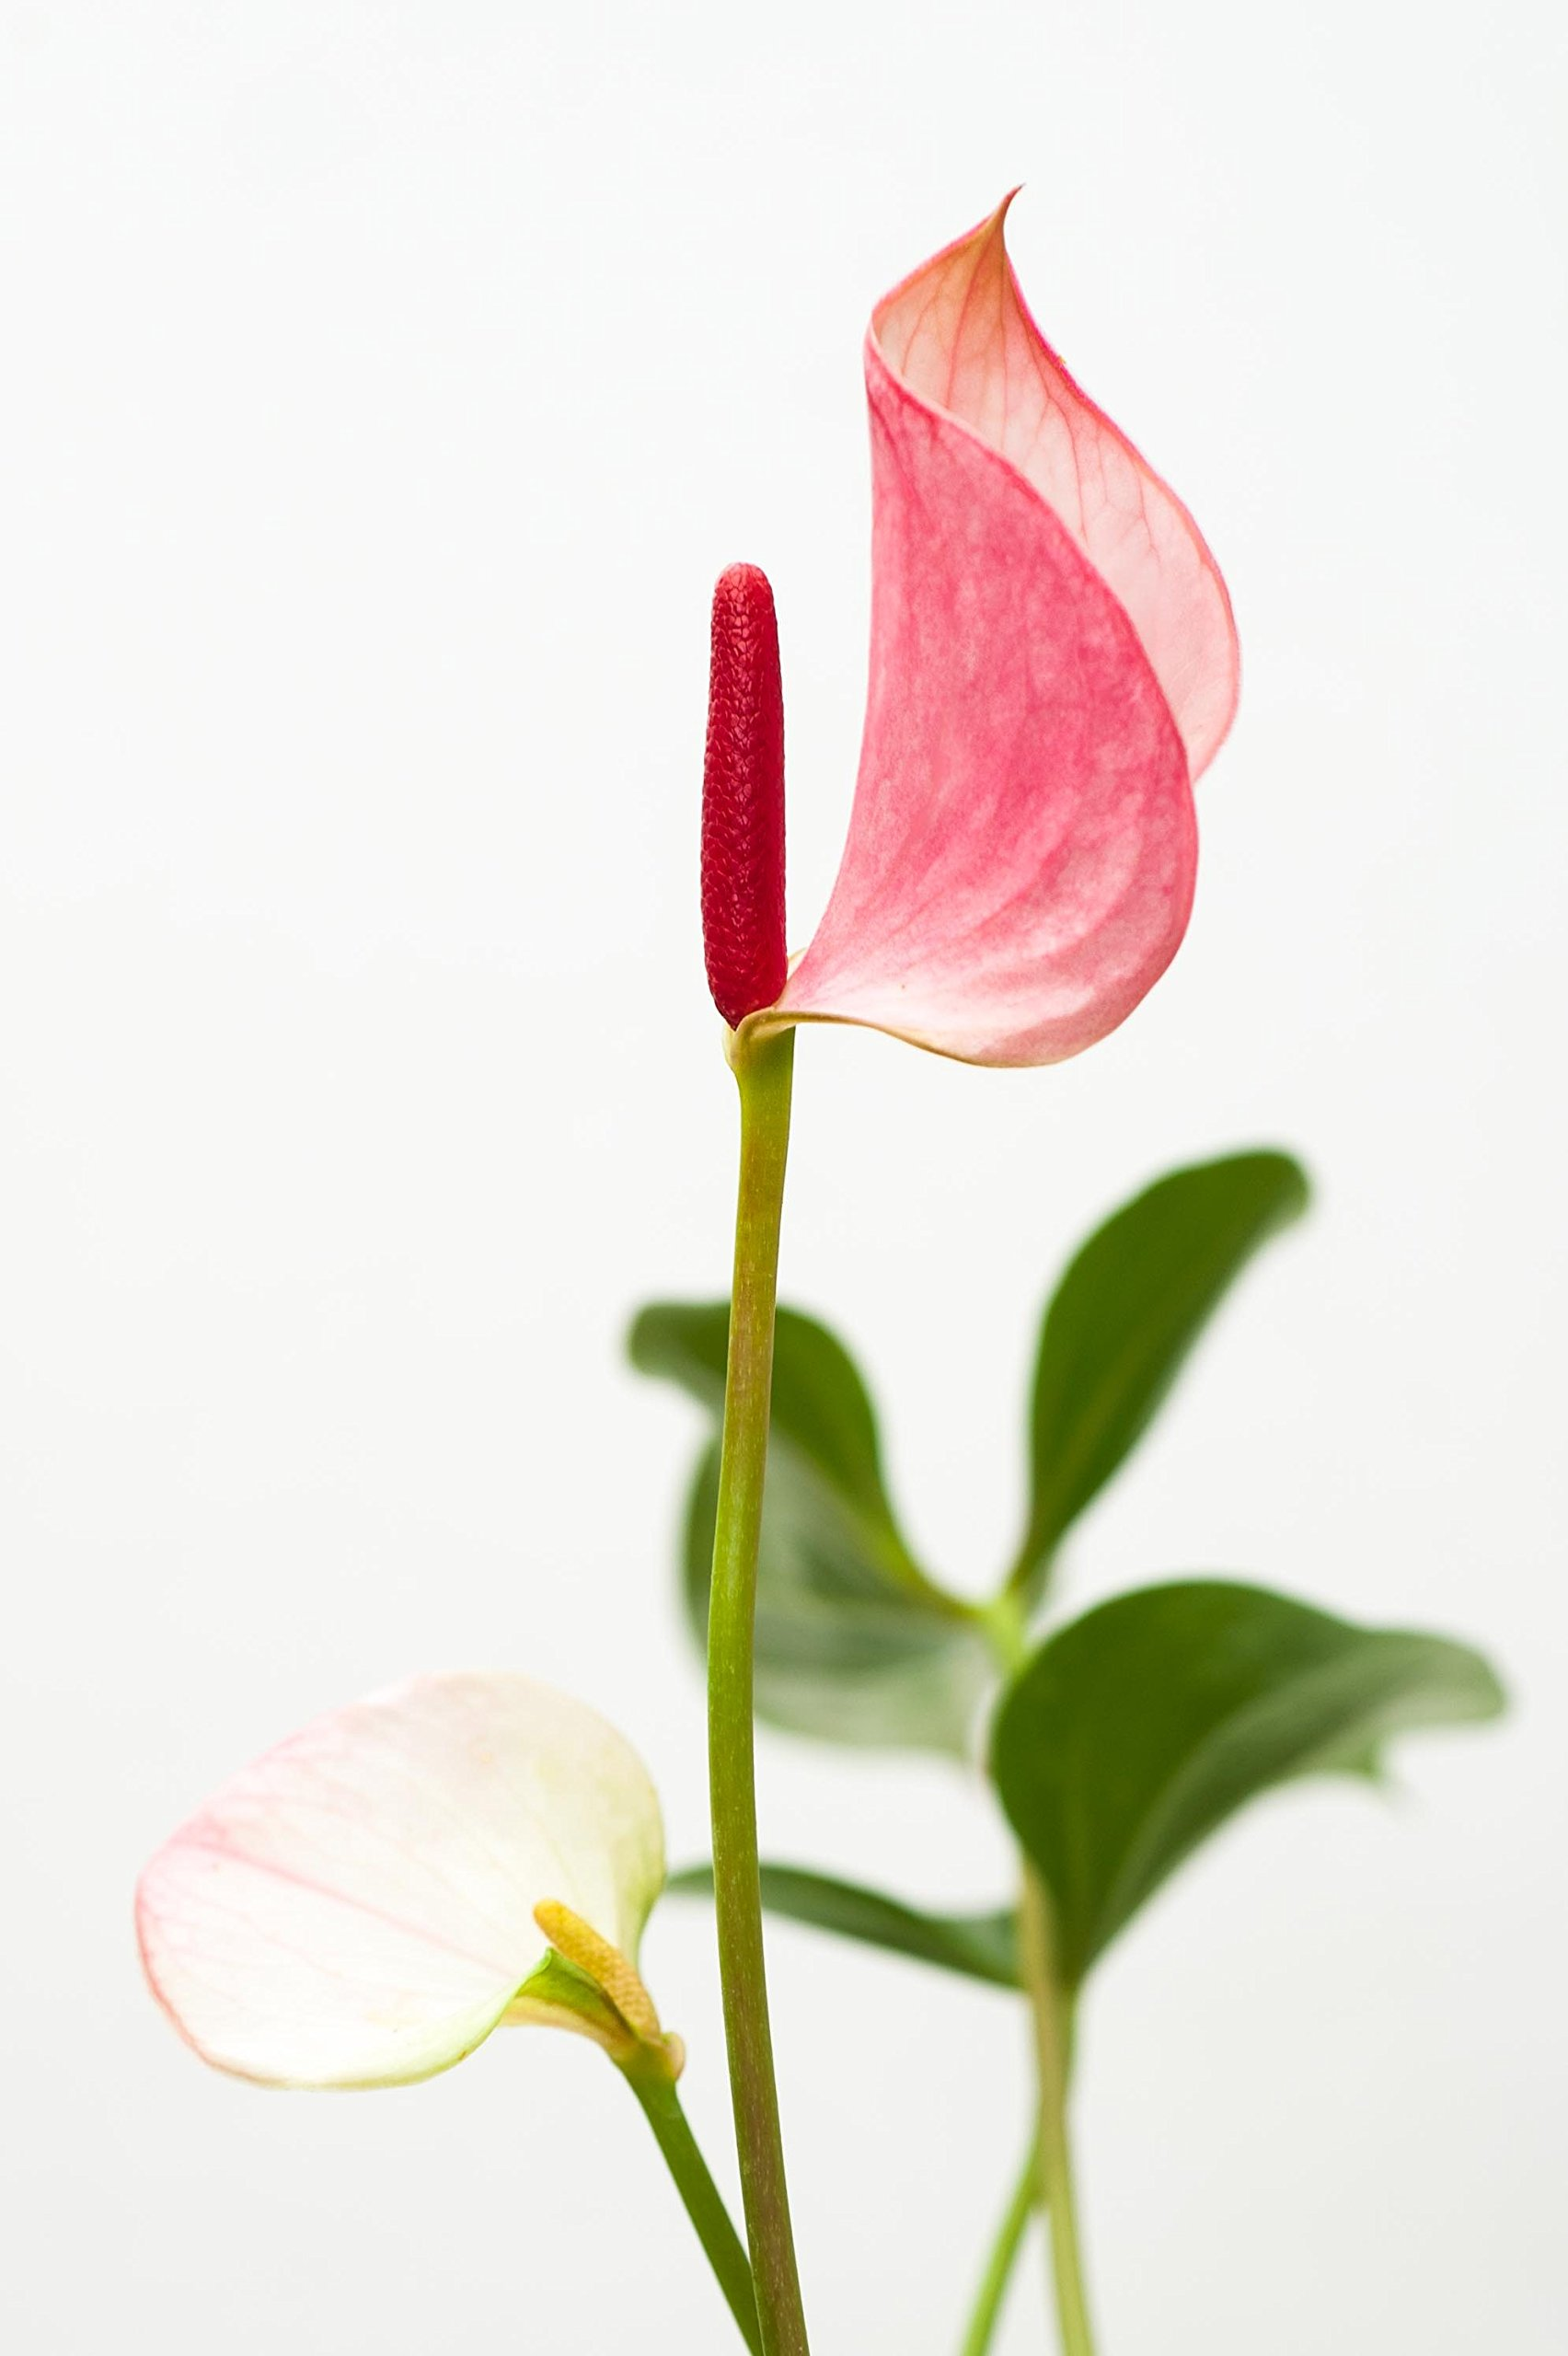 Anthurium Pink - Live House Plant - Easy to Grow - Florist Quality - Cleans the Air by Florida Foliage (Image #4)